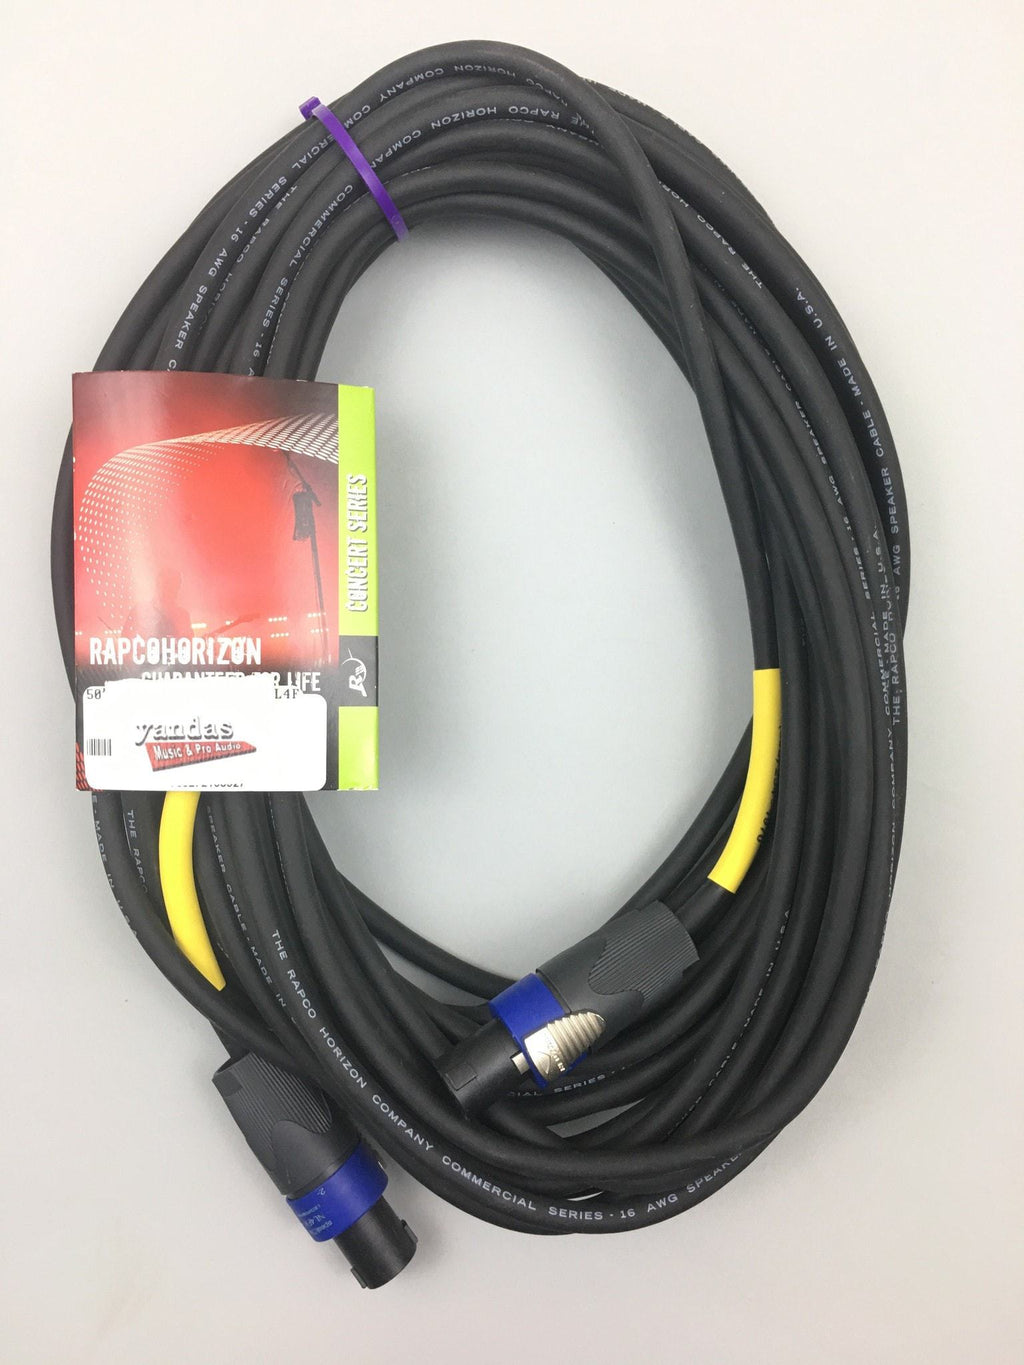 Rapco 50' 16 Gauge Speaker Cable | Speakon Connectors